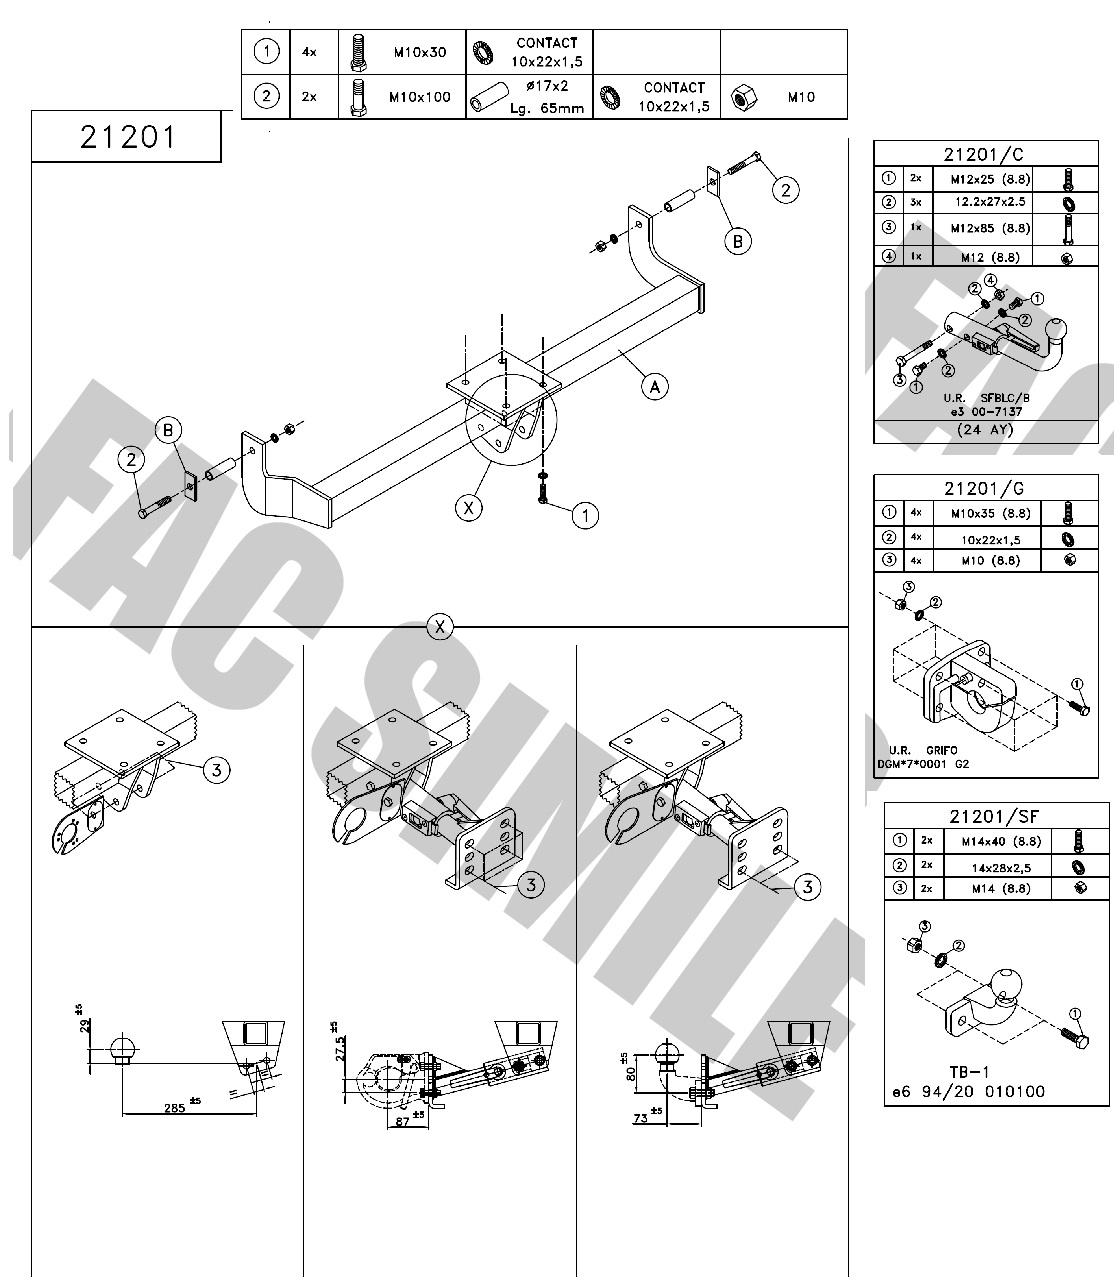 Detach Towbar 7p Wiring For Mahindra Goa Pick Up 4wd 2 4dr 06 On Engine Diagram